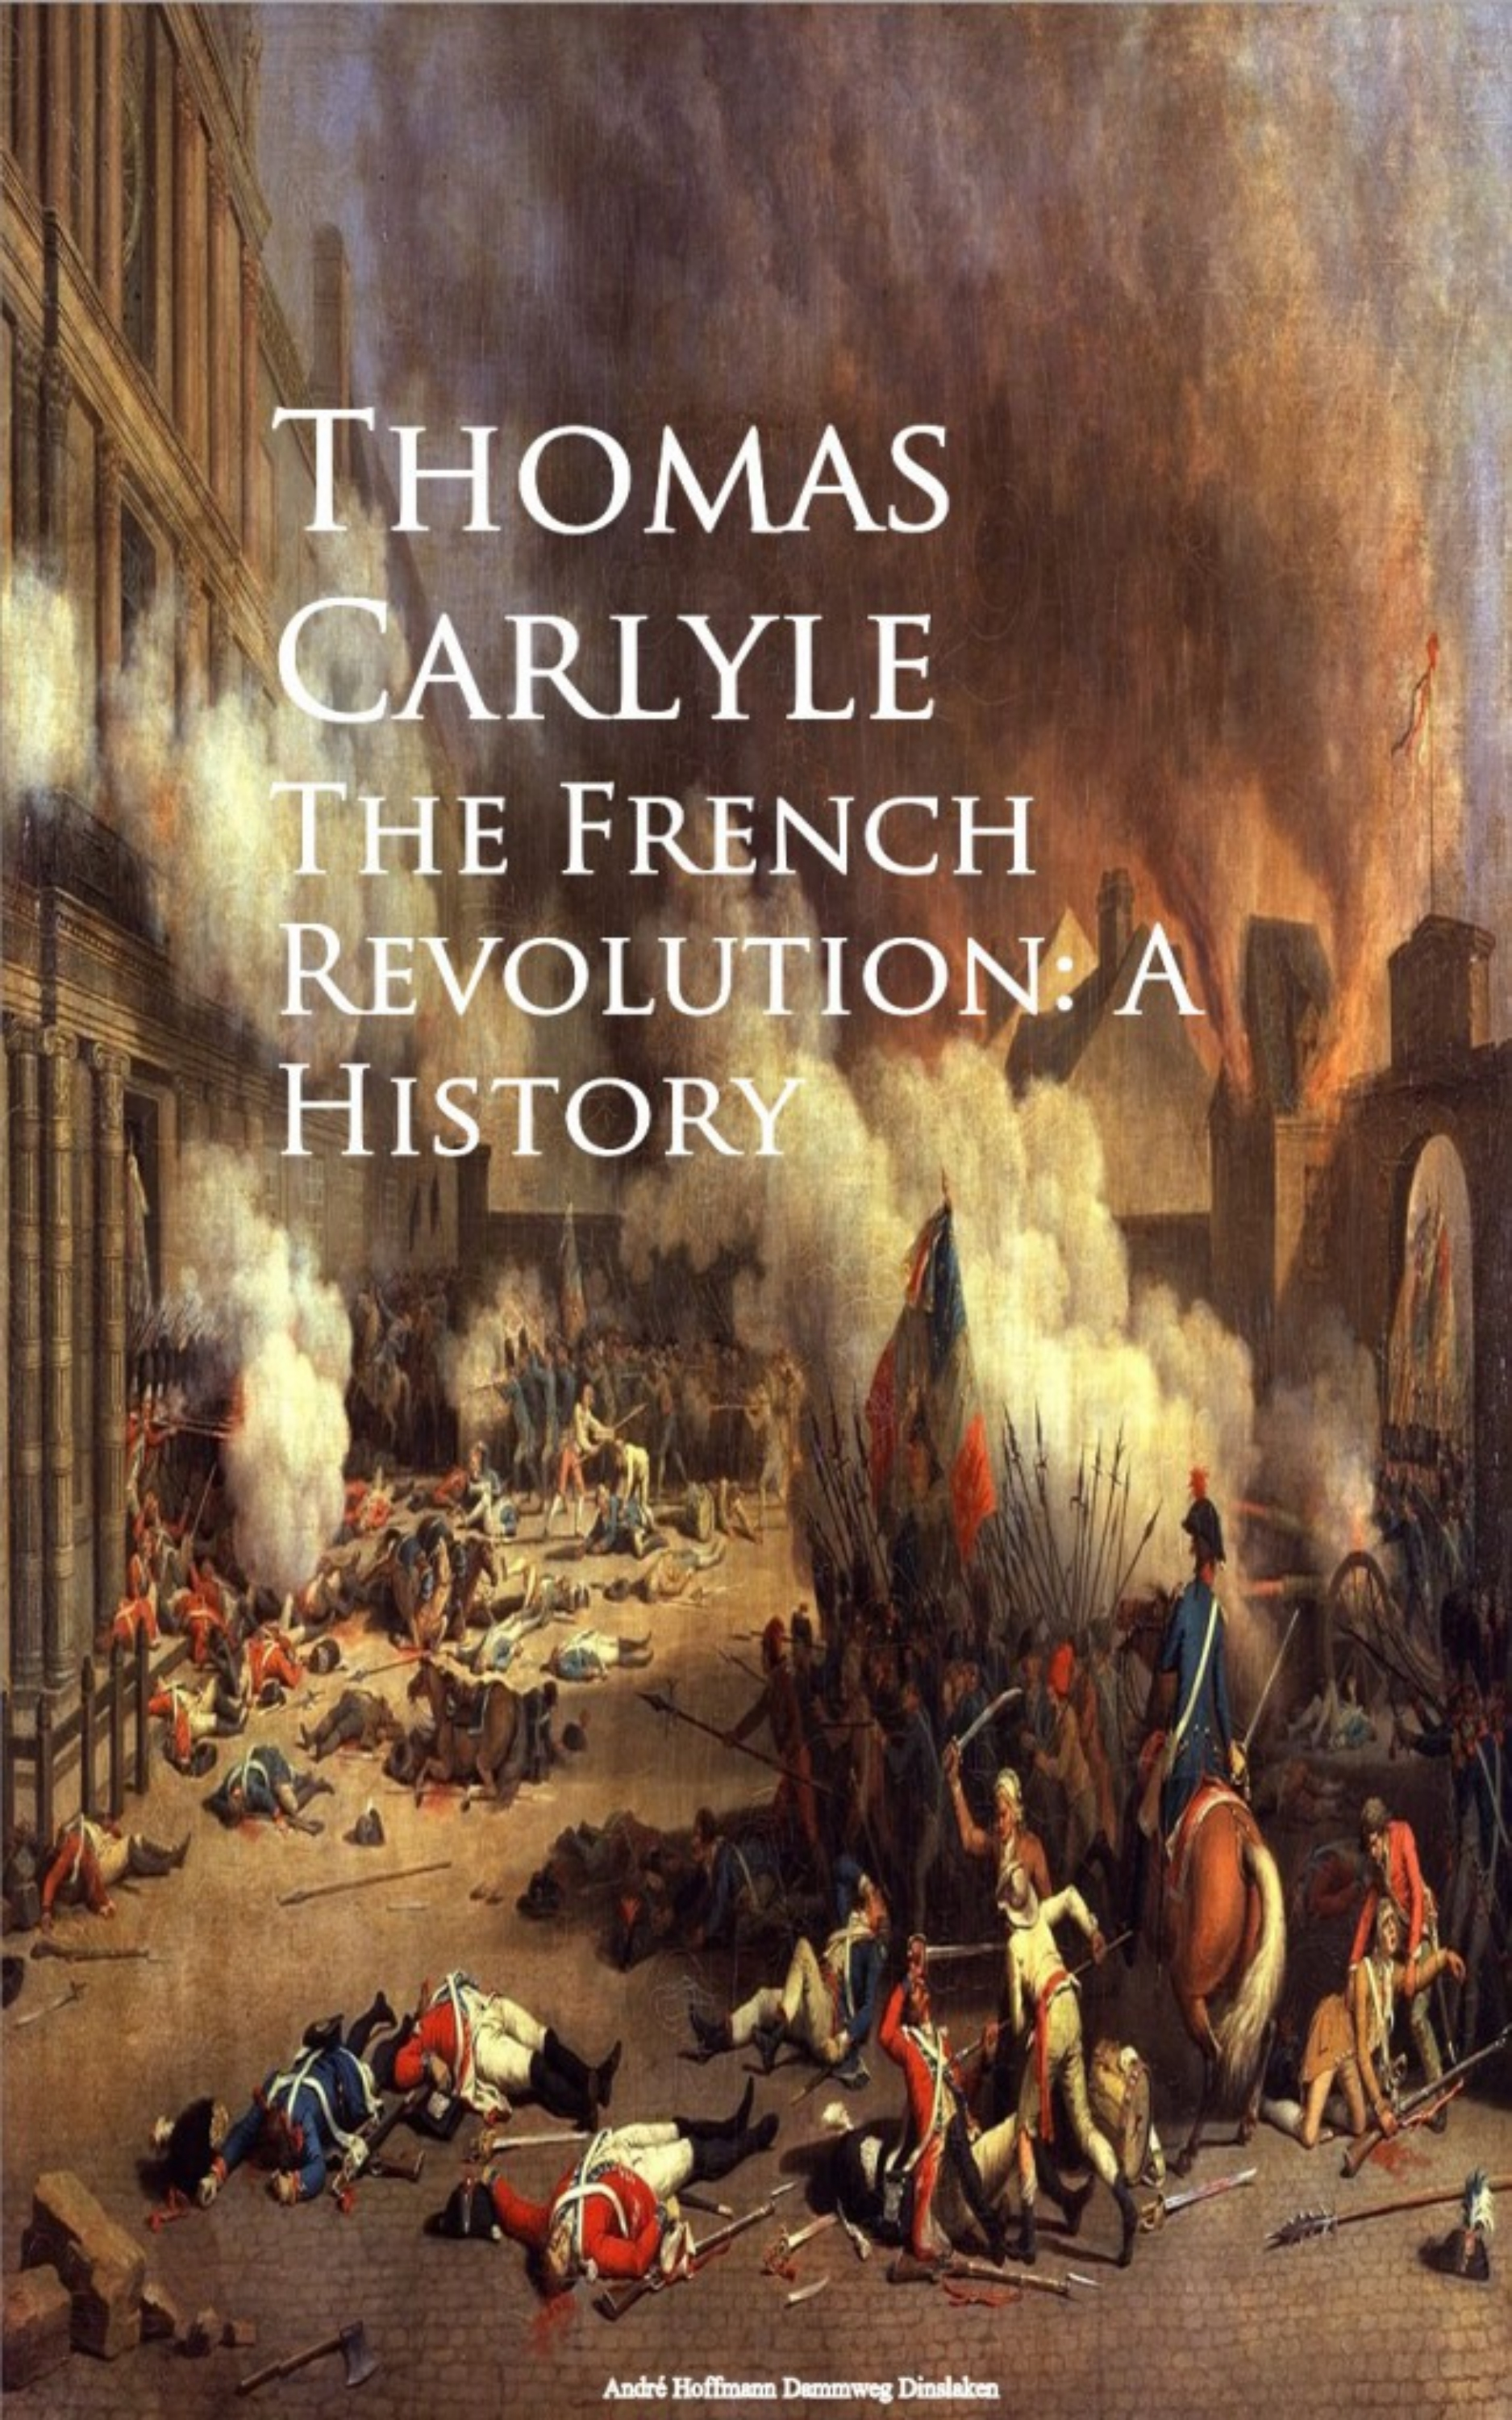 Thomas Carlyle The French Revolution: A History